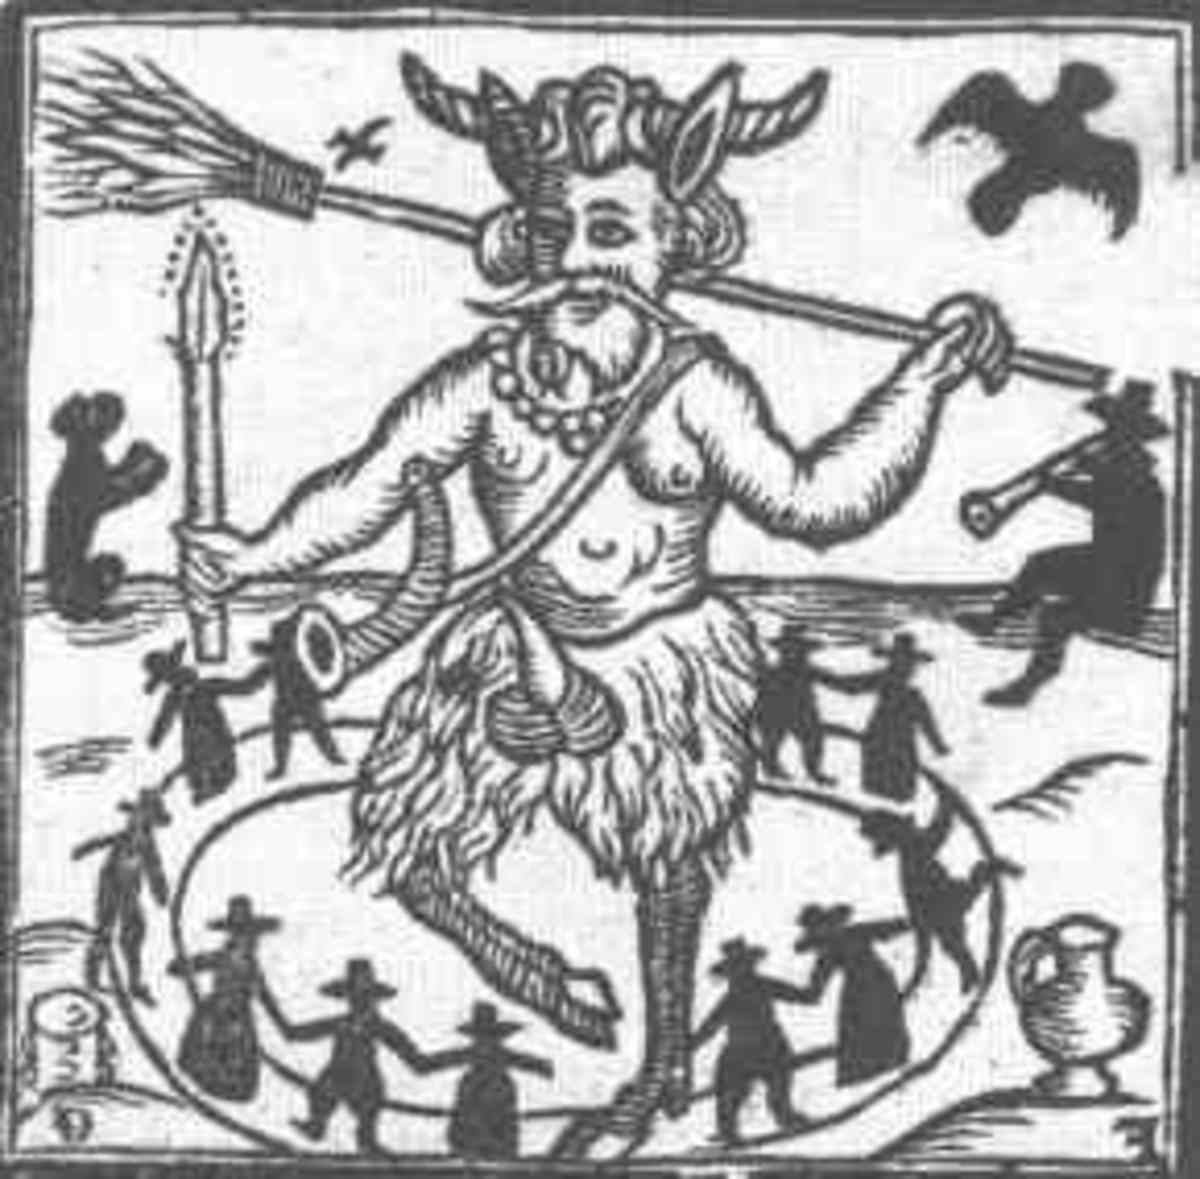 In Wicca, the God is associated with raw, untamed nature, wild animals and fertility. We're not a religion that believes in 'demons' or 'devils' or 'evil'.